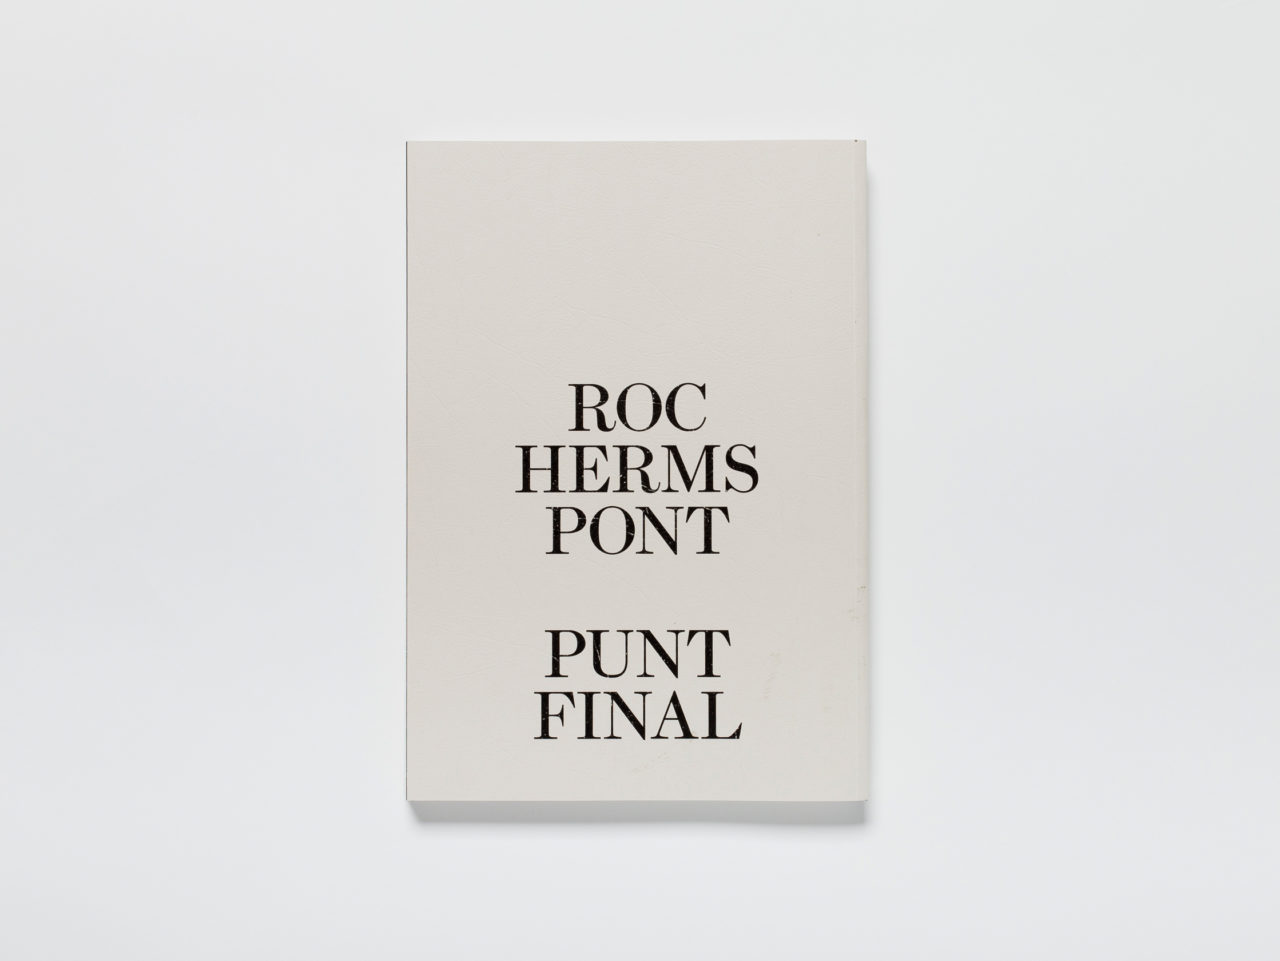 Roc Herms, Punt Final